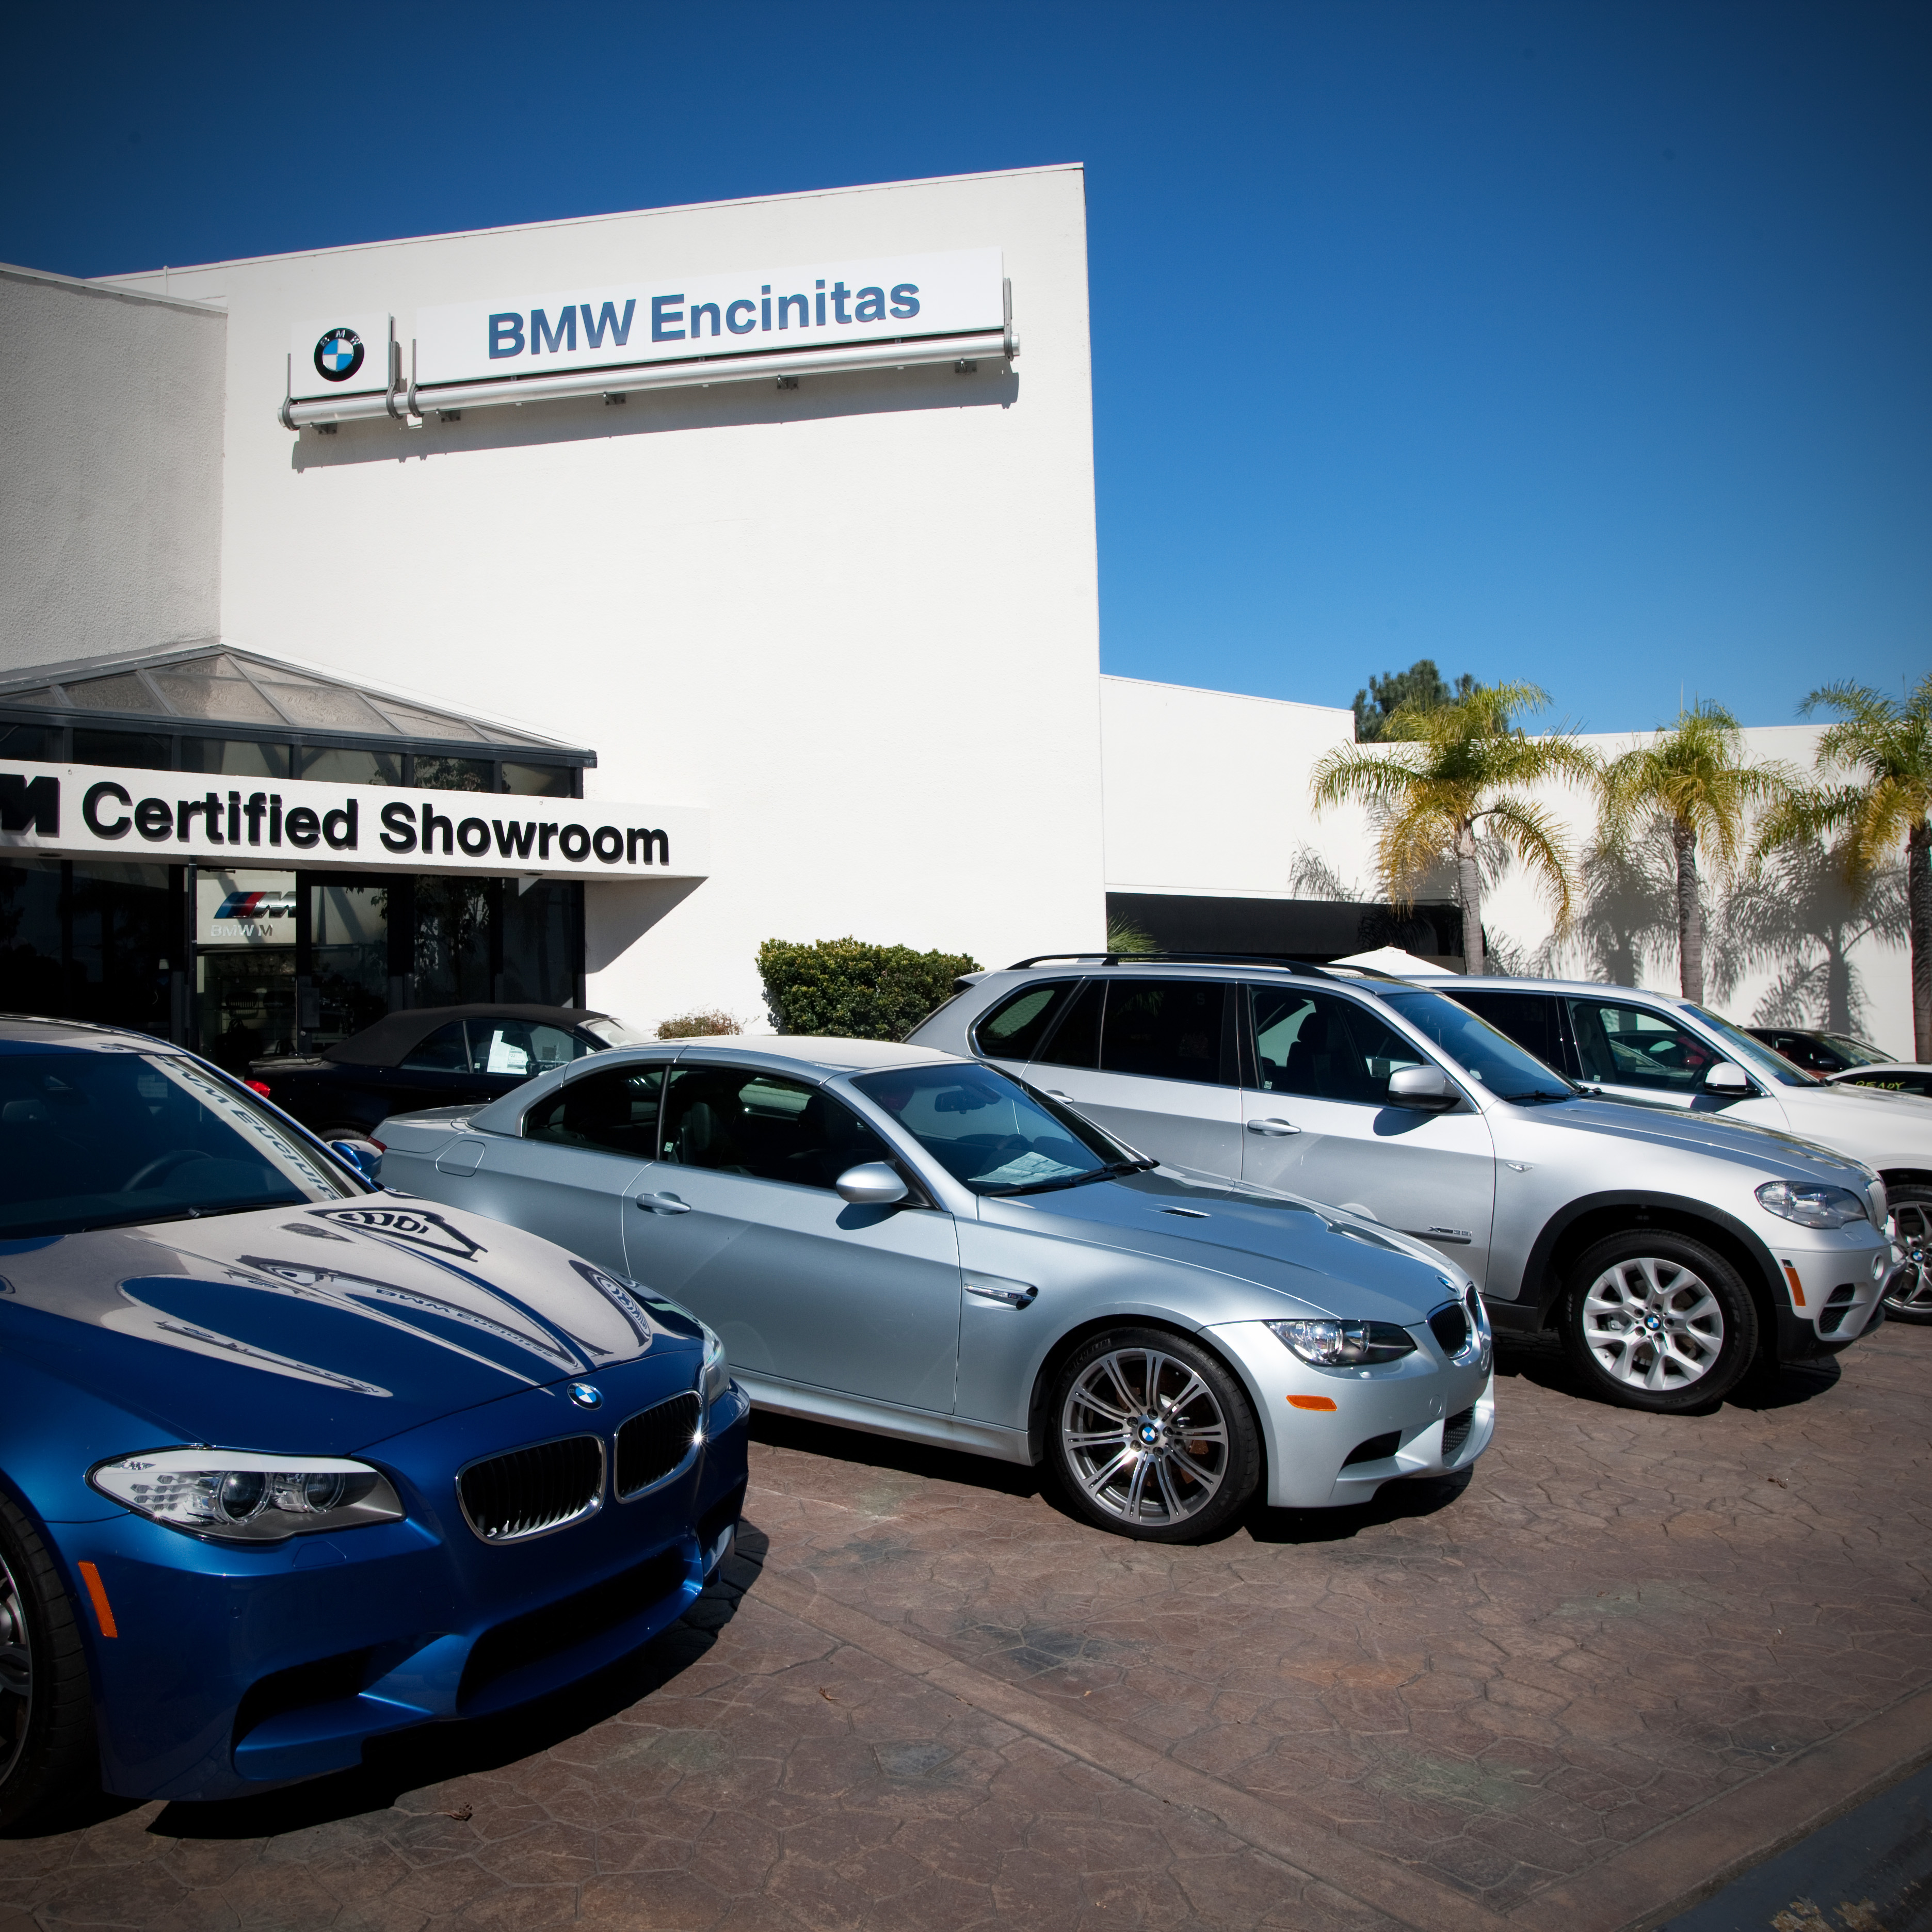 BMW Encinitas Coupons near me in Encinitas  8coupons